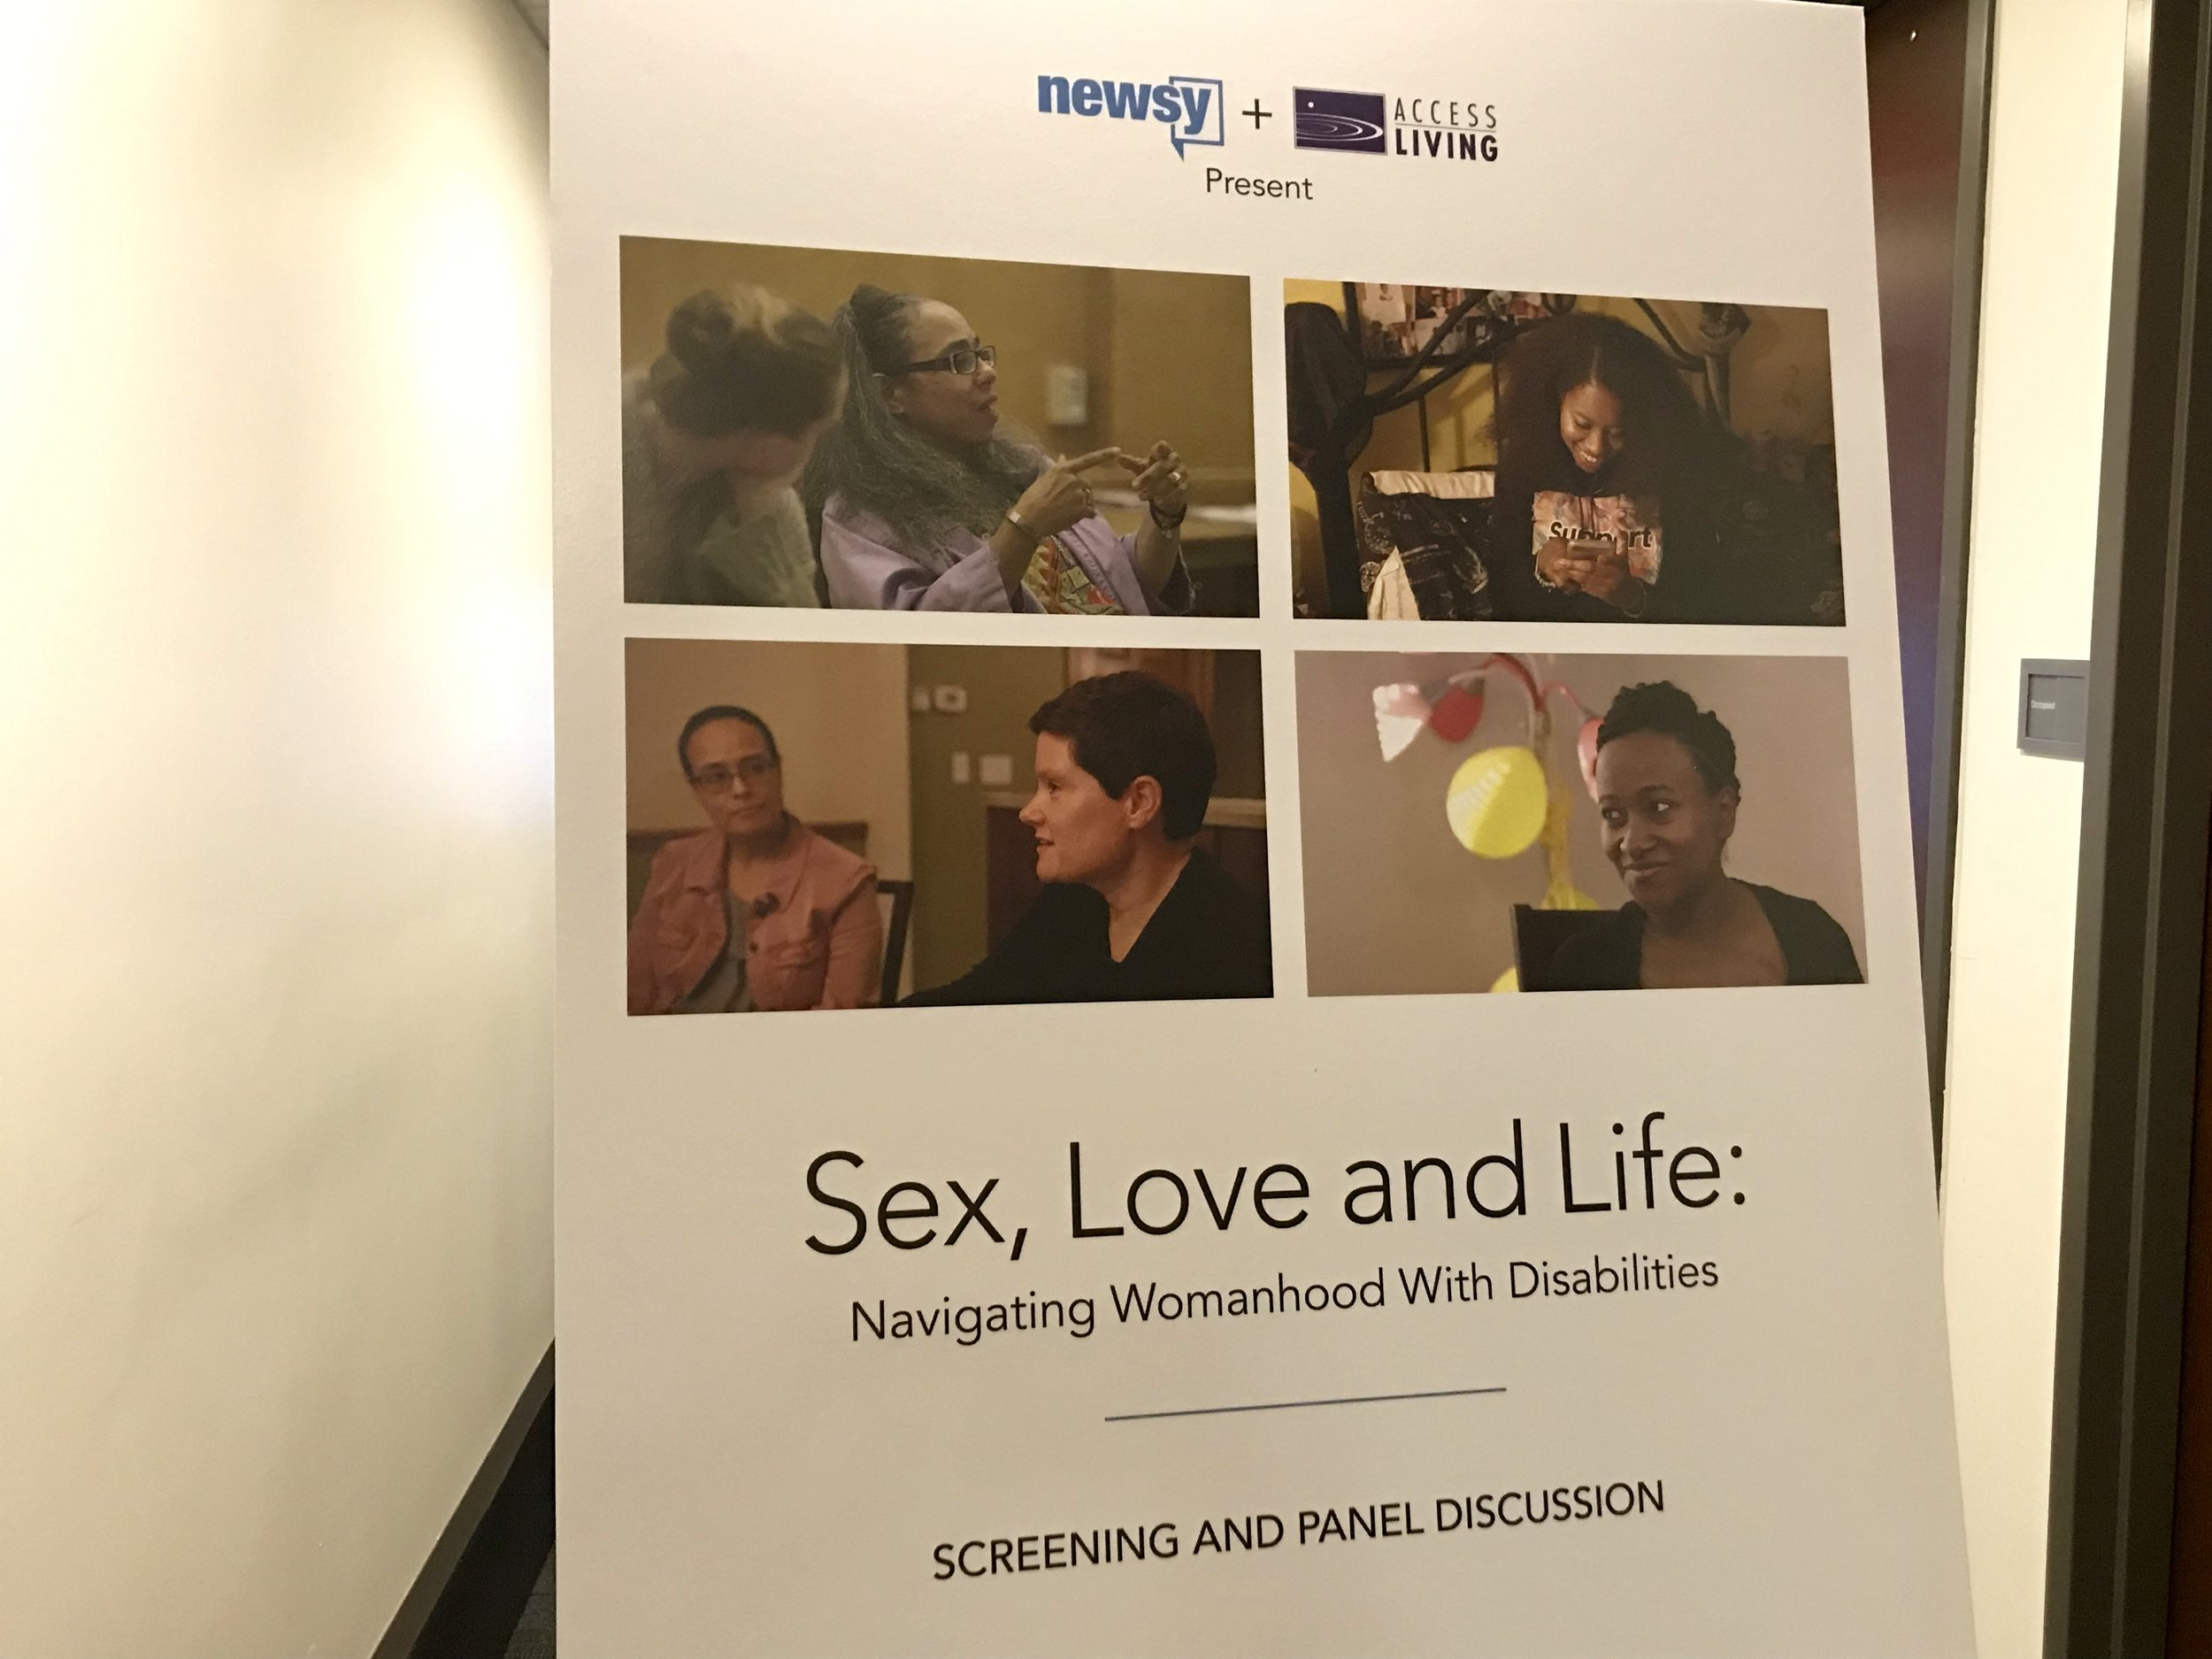 "On April 11, 2019, Access Living CIL (Center for Independent Living) in Chicago hosted a Newsy event ""Sex, Love, and Life: Navigating Womanhood and Disabilities. The evening contained a panel discussion, interspersed with viewing the clips from the series. The 4 clips they showed were about Sex, Love and Dating; Sexual Assault and Abuse; Pregnancy; and Motherhood. The videos presented a more holistic view of women with disabilities and sexuality.  The panelists included Sorel Estrada Volpe, a disability activist who as a non-profit called Frill-Ability, Inc.; Candace Coleman, the Racial Justice Community Organizer at Access Living; another woman whose name I didn't get and Justin Cooper, a black filmmaker and disability activity who produced a documentary called The Wheelchair Chronicles.  Advocate Cathy Saunders and BTS Co-Director Linda Sandman were interviewed in the development of the series.  Although the series isn't available online yet, check out the trailer at   https://www.youtube.com/watch?v=InLUqQ8FNLY"